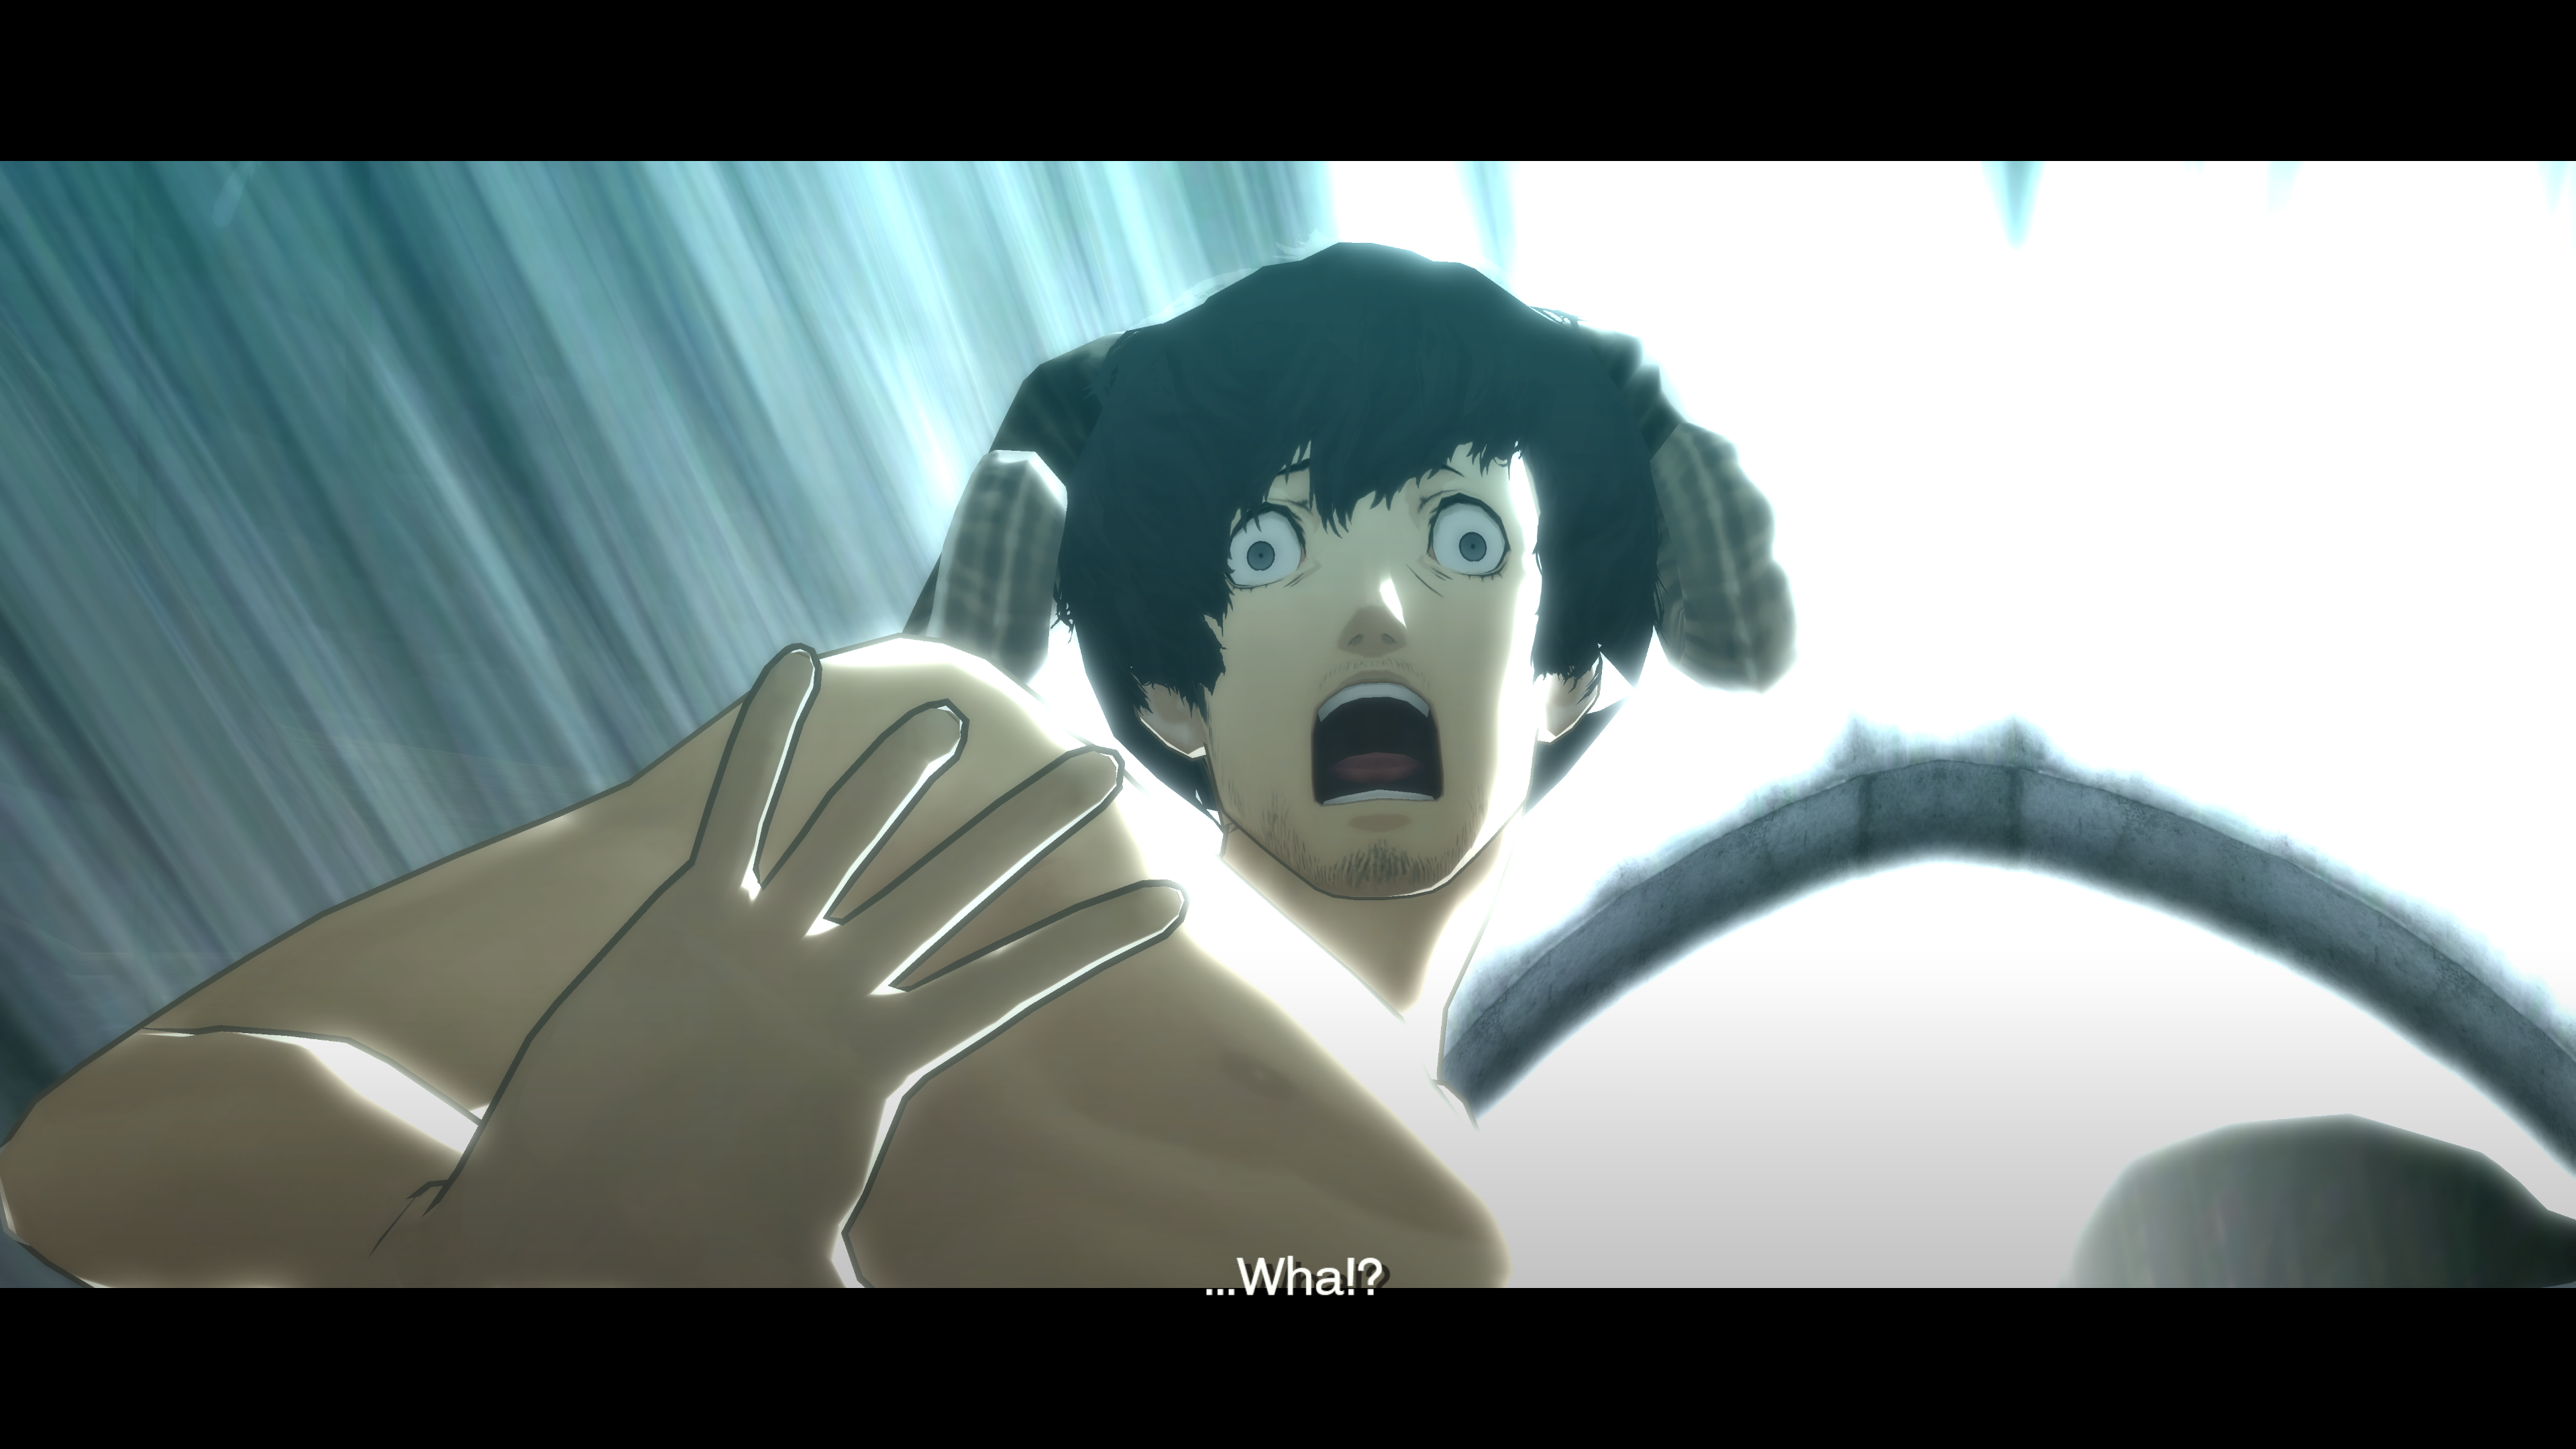 Sexy puzzler 'Catherine' finally hits PC, complete with Japanese voiceovers